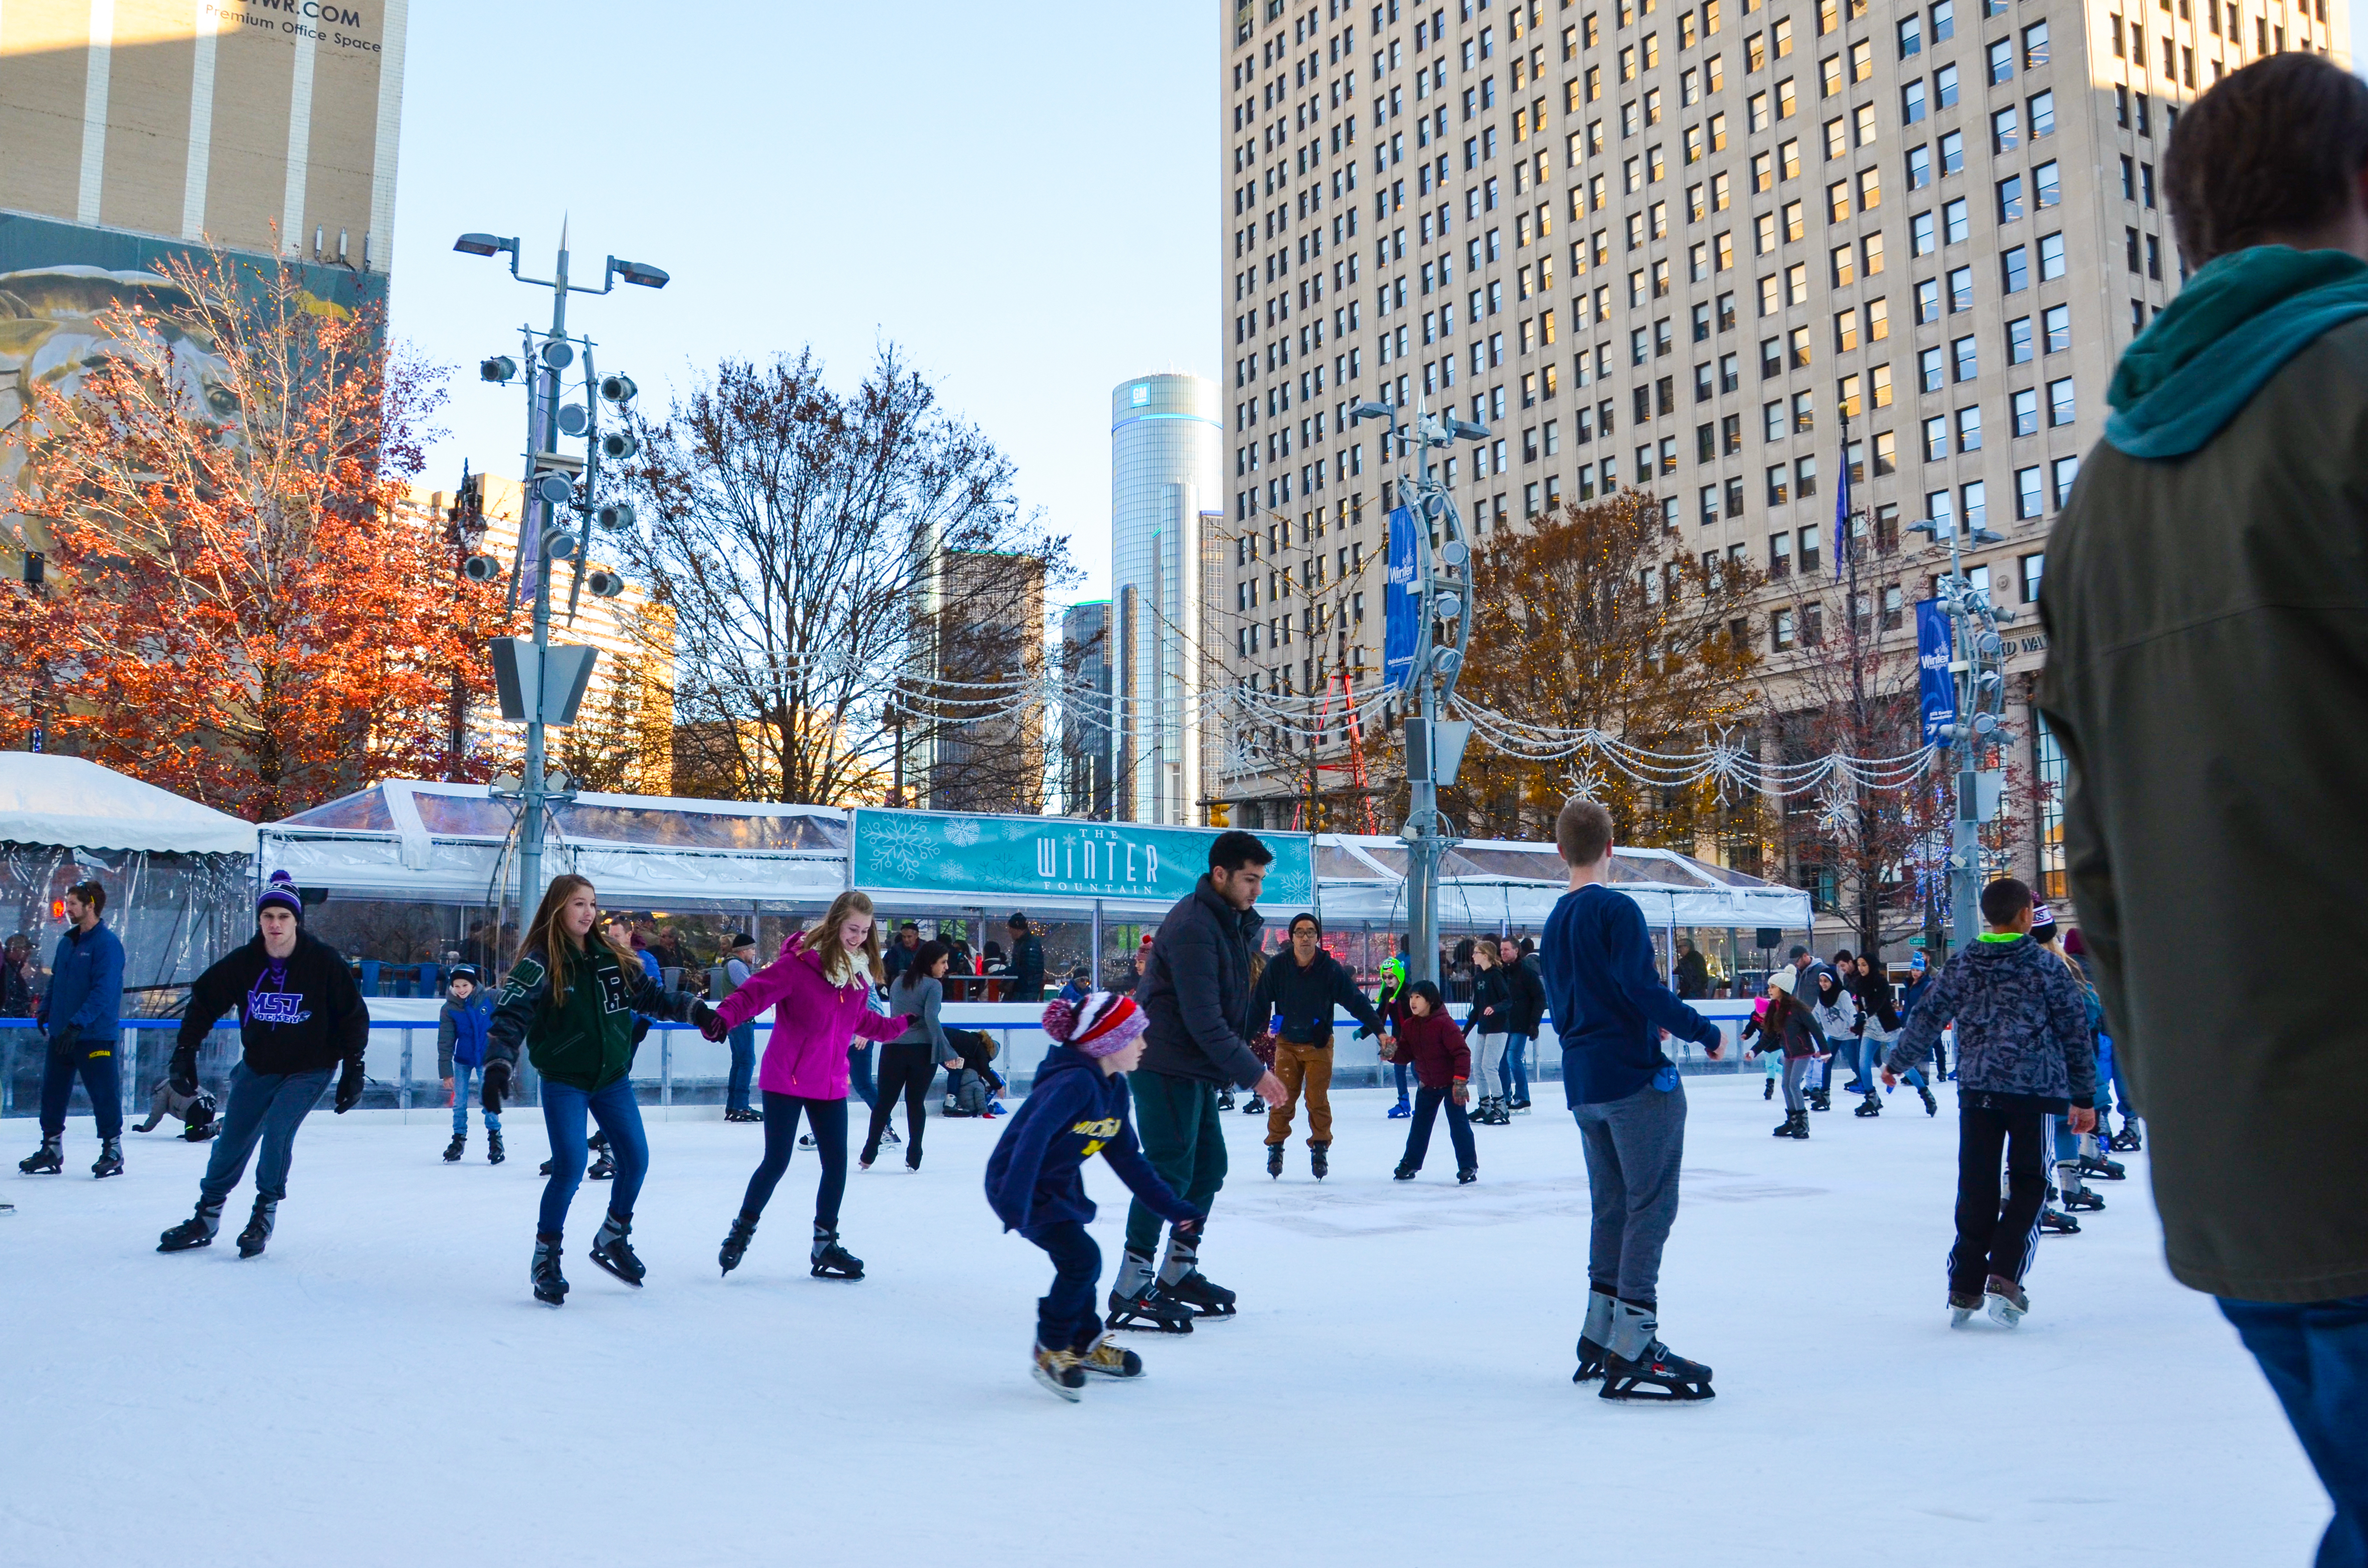 Kids with some adults at an ice rink surrounded by skyscrapers.